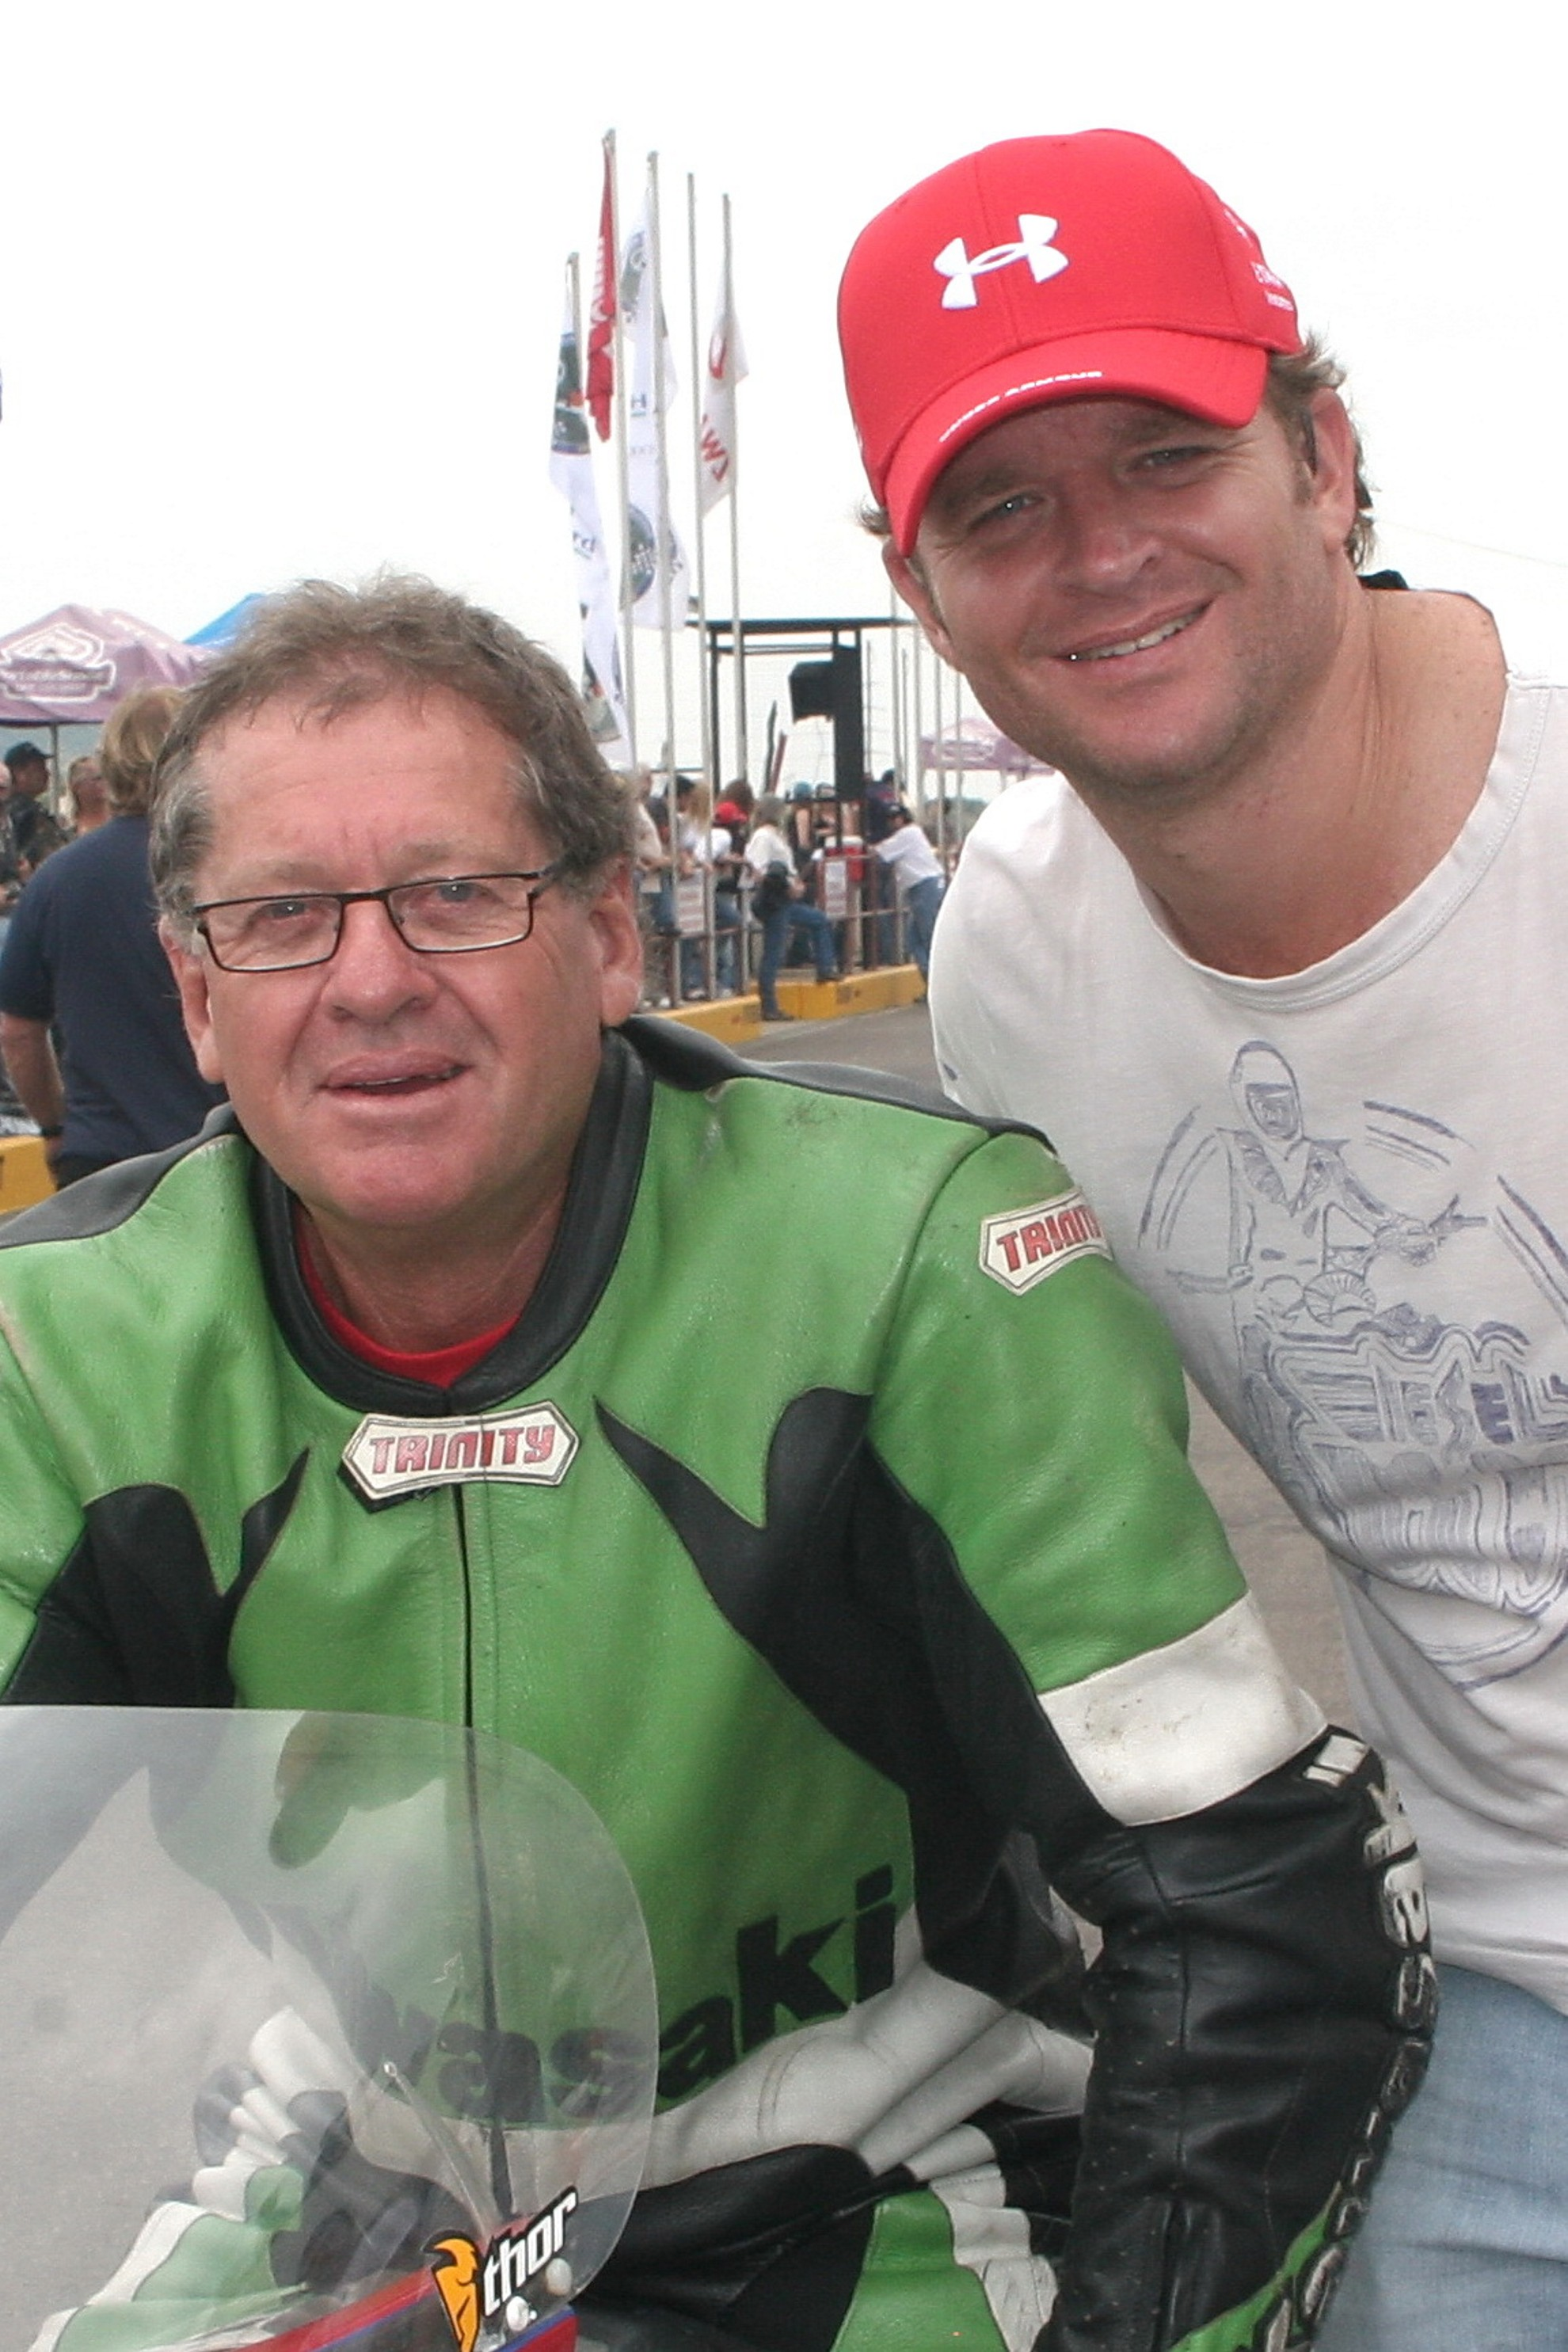 Ian and Jaki Scheckter